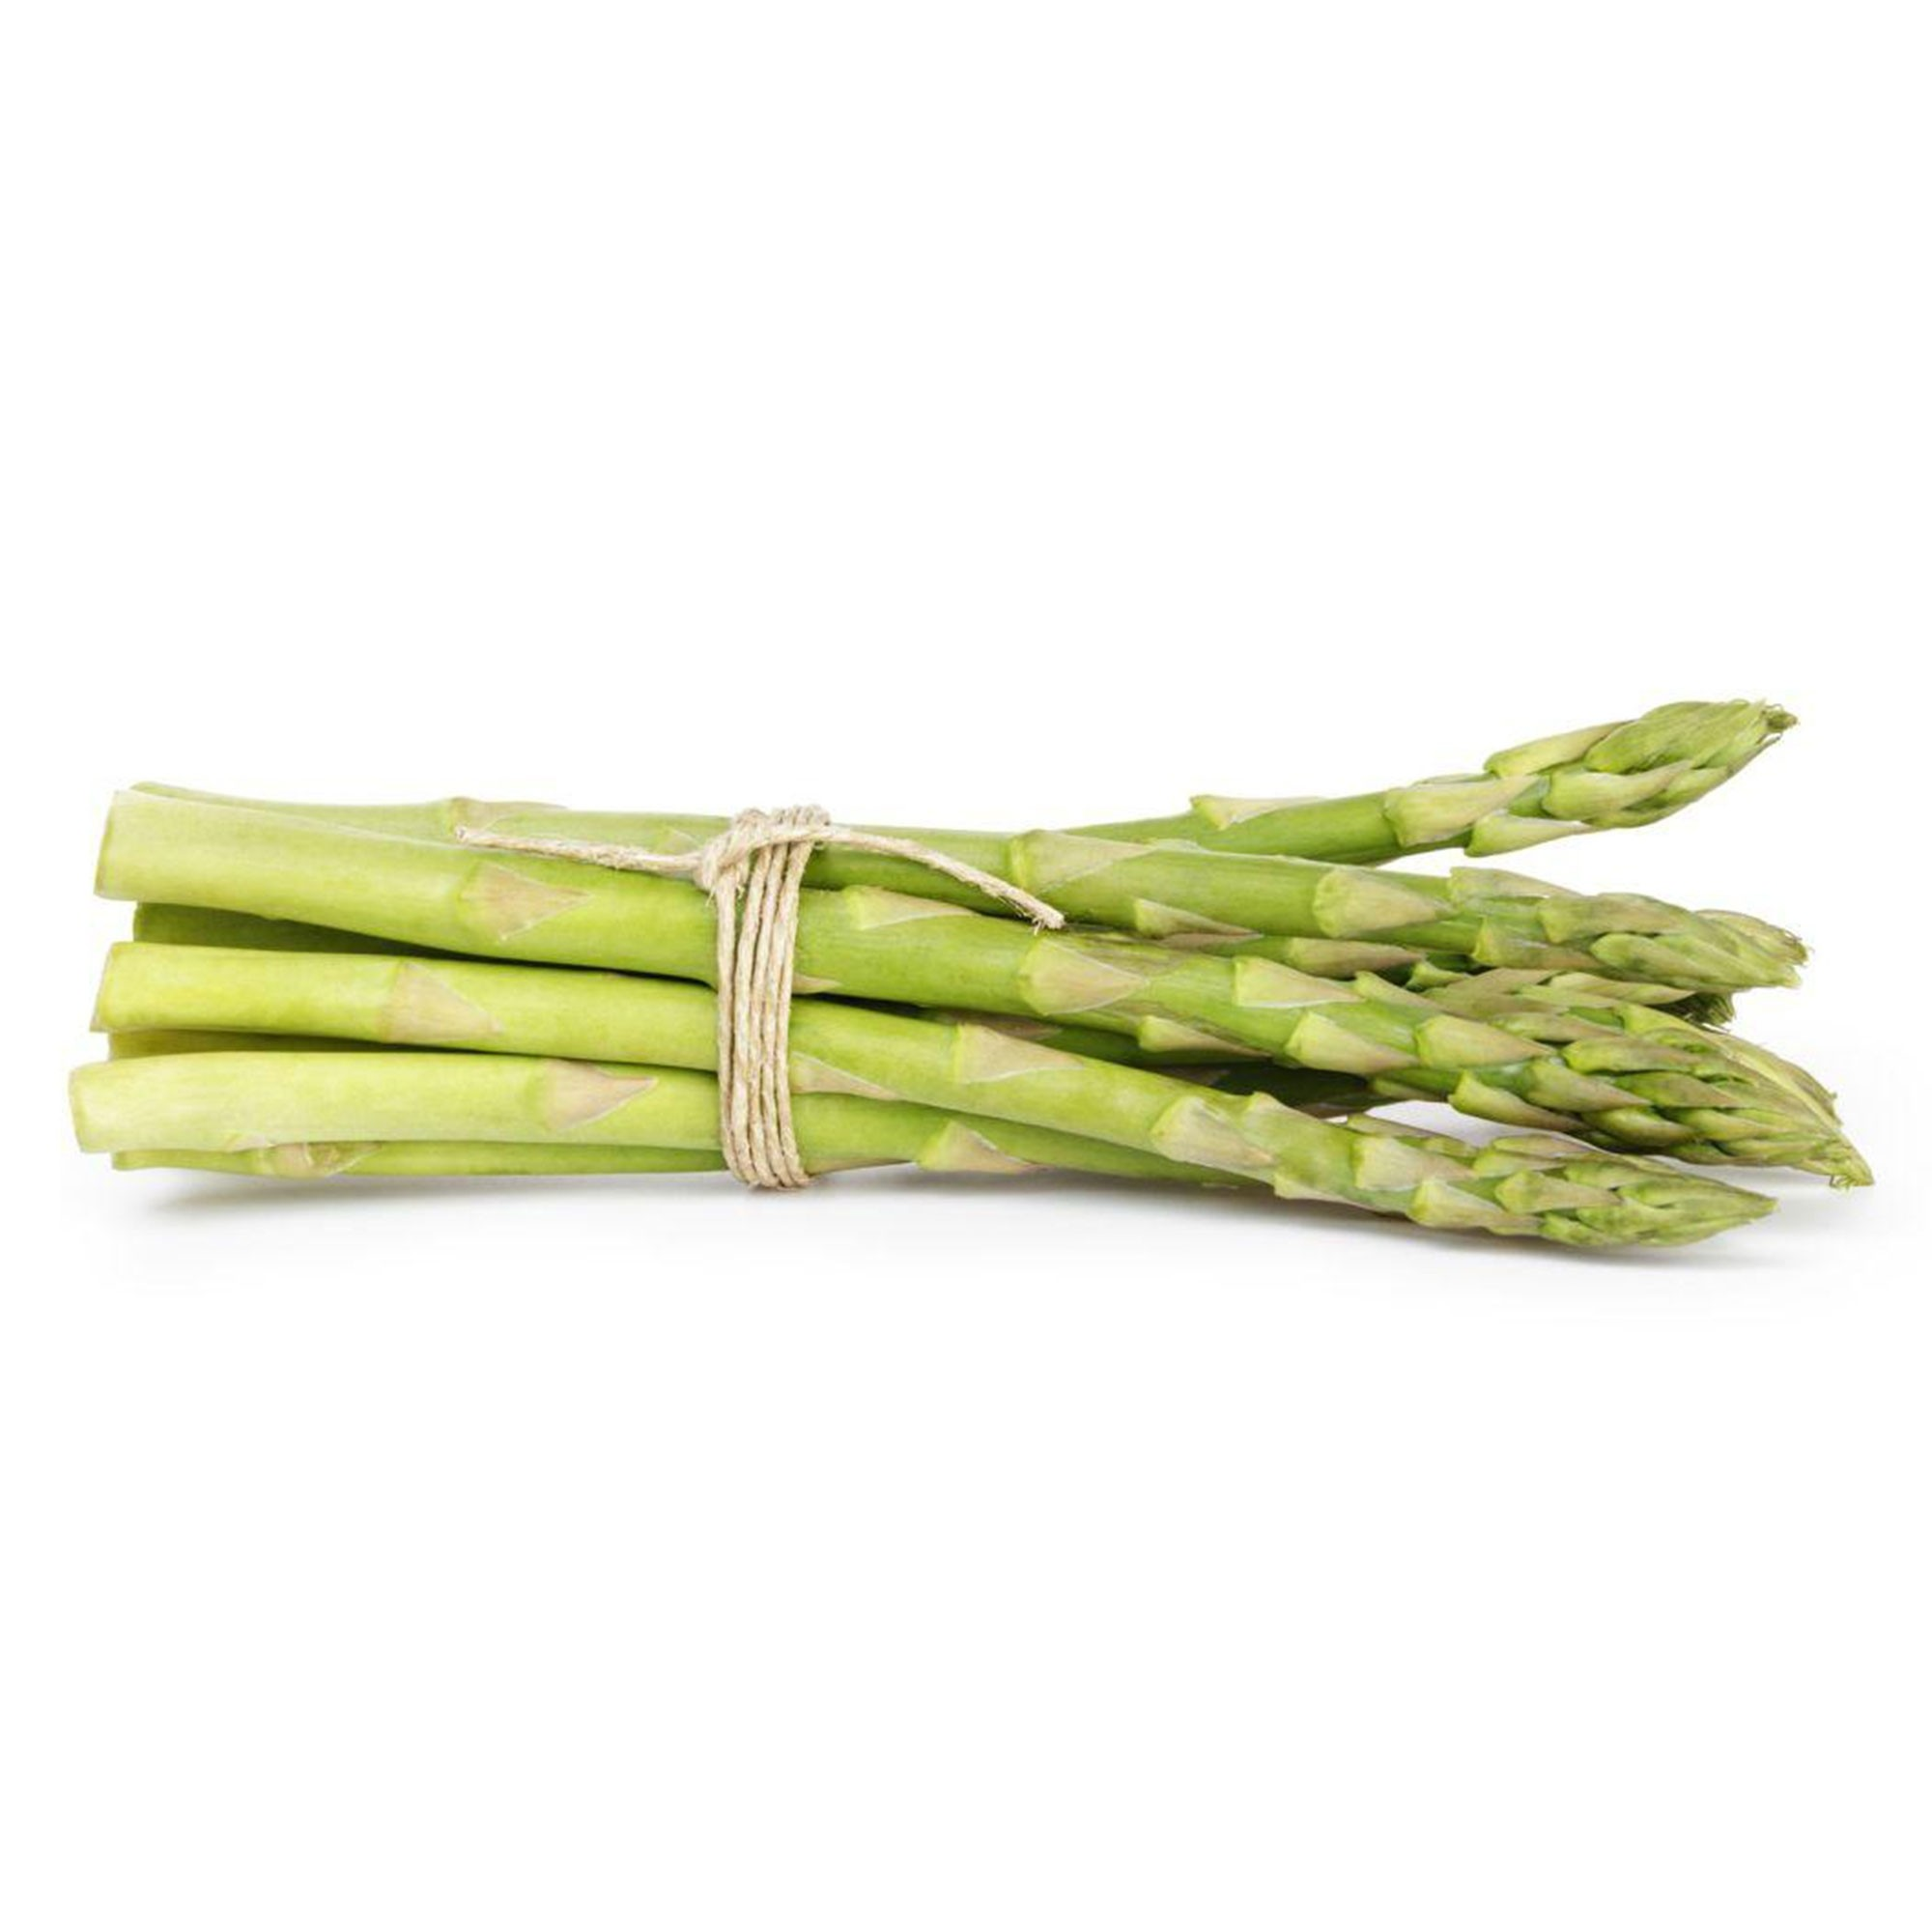 Green asparagus bare root